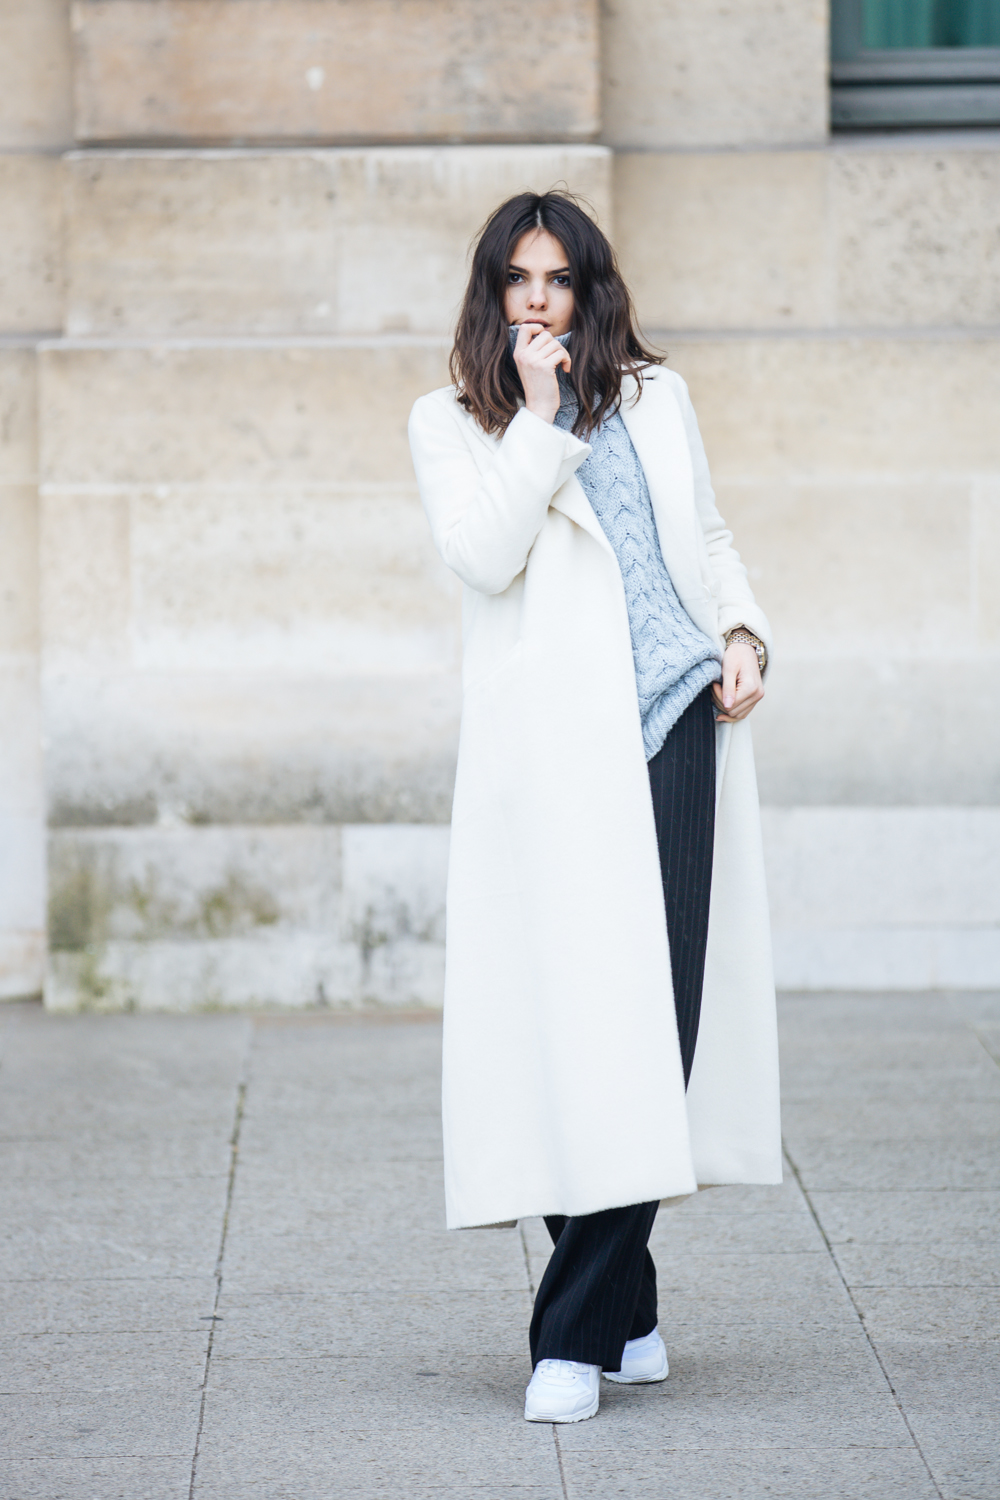 Fashion Blogger Doina Ciobanu In Trousers From Emporio Armani Zara Turtleneck White Coat From Jaeger Celine bag Nike trainers